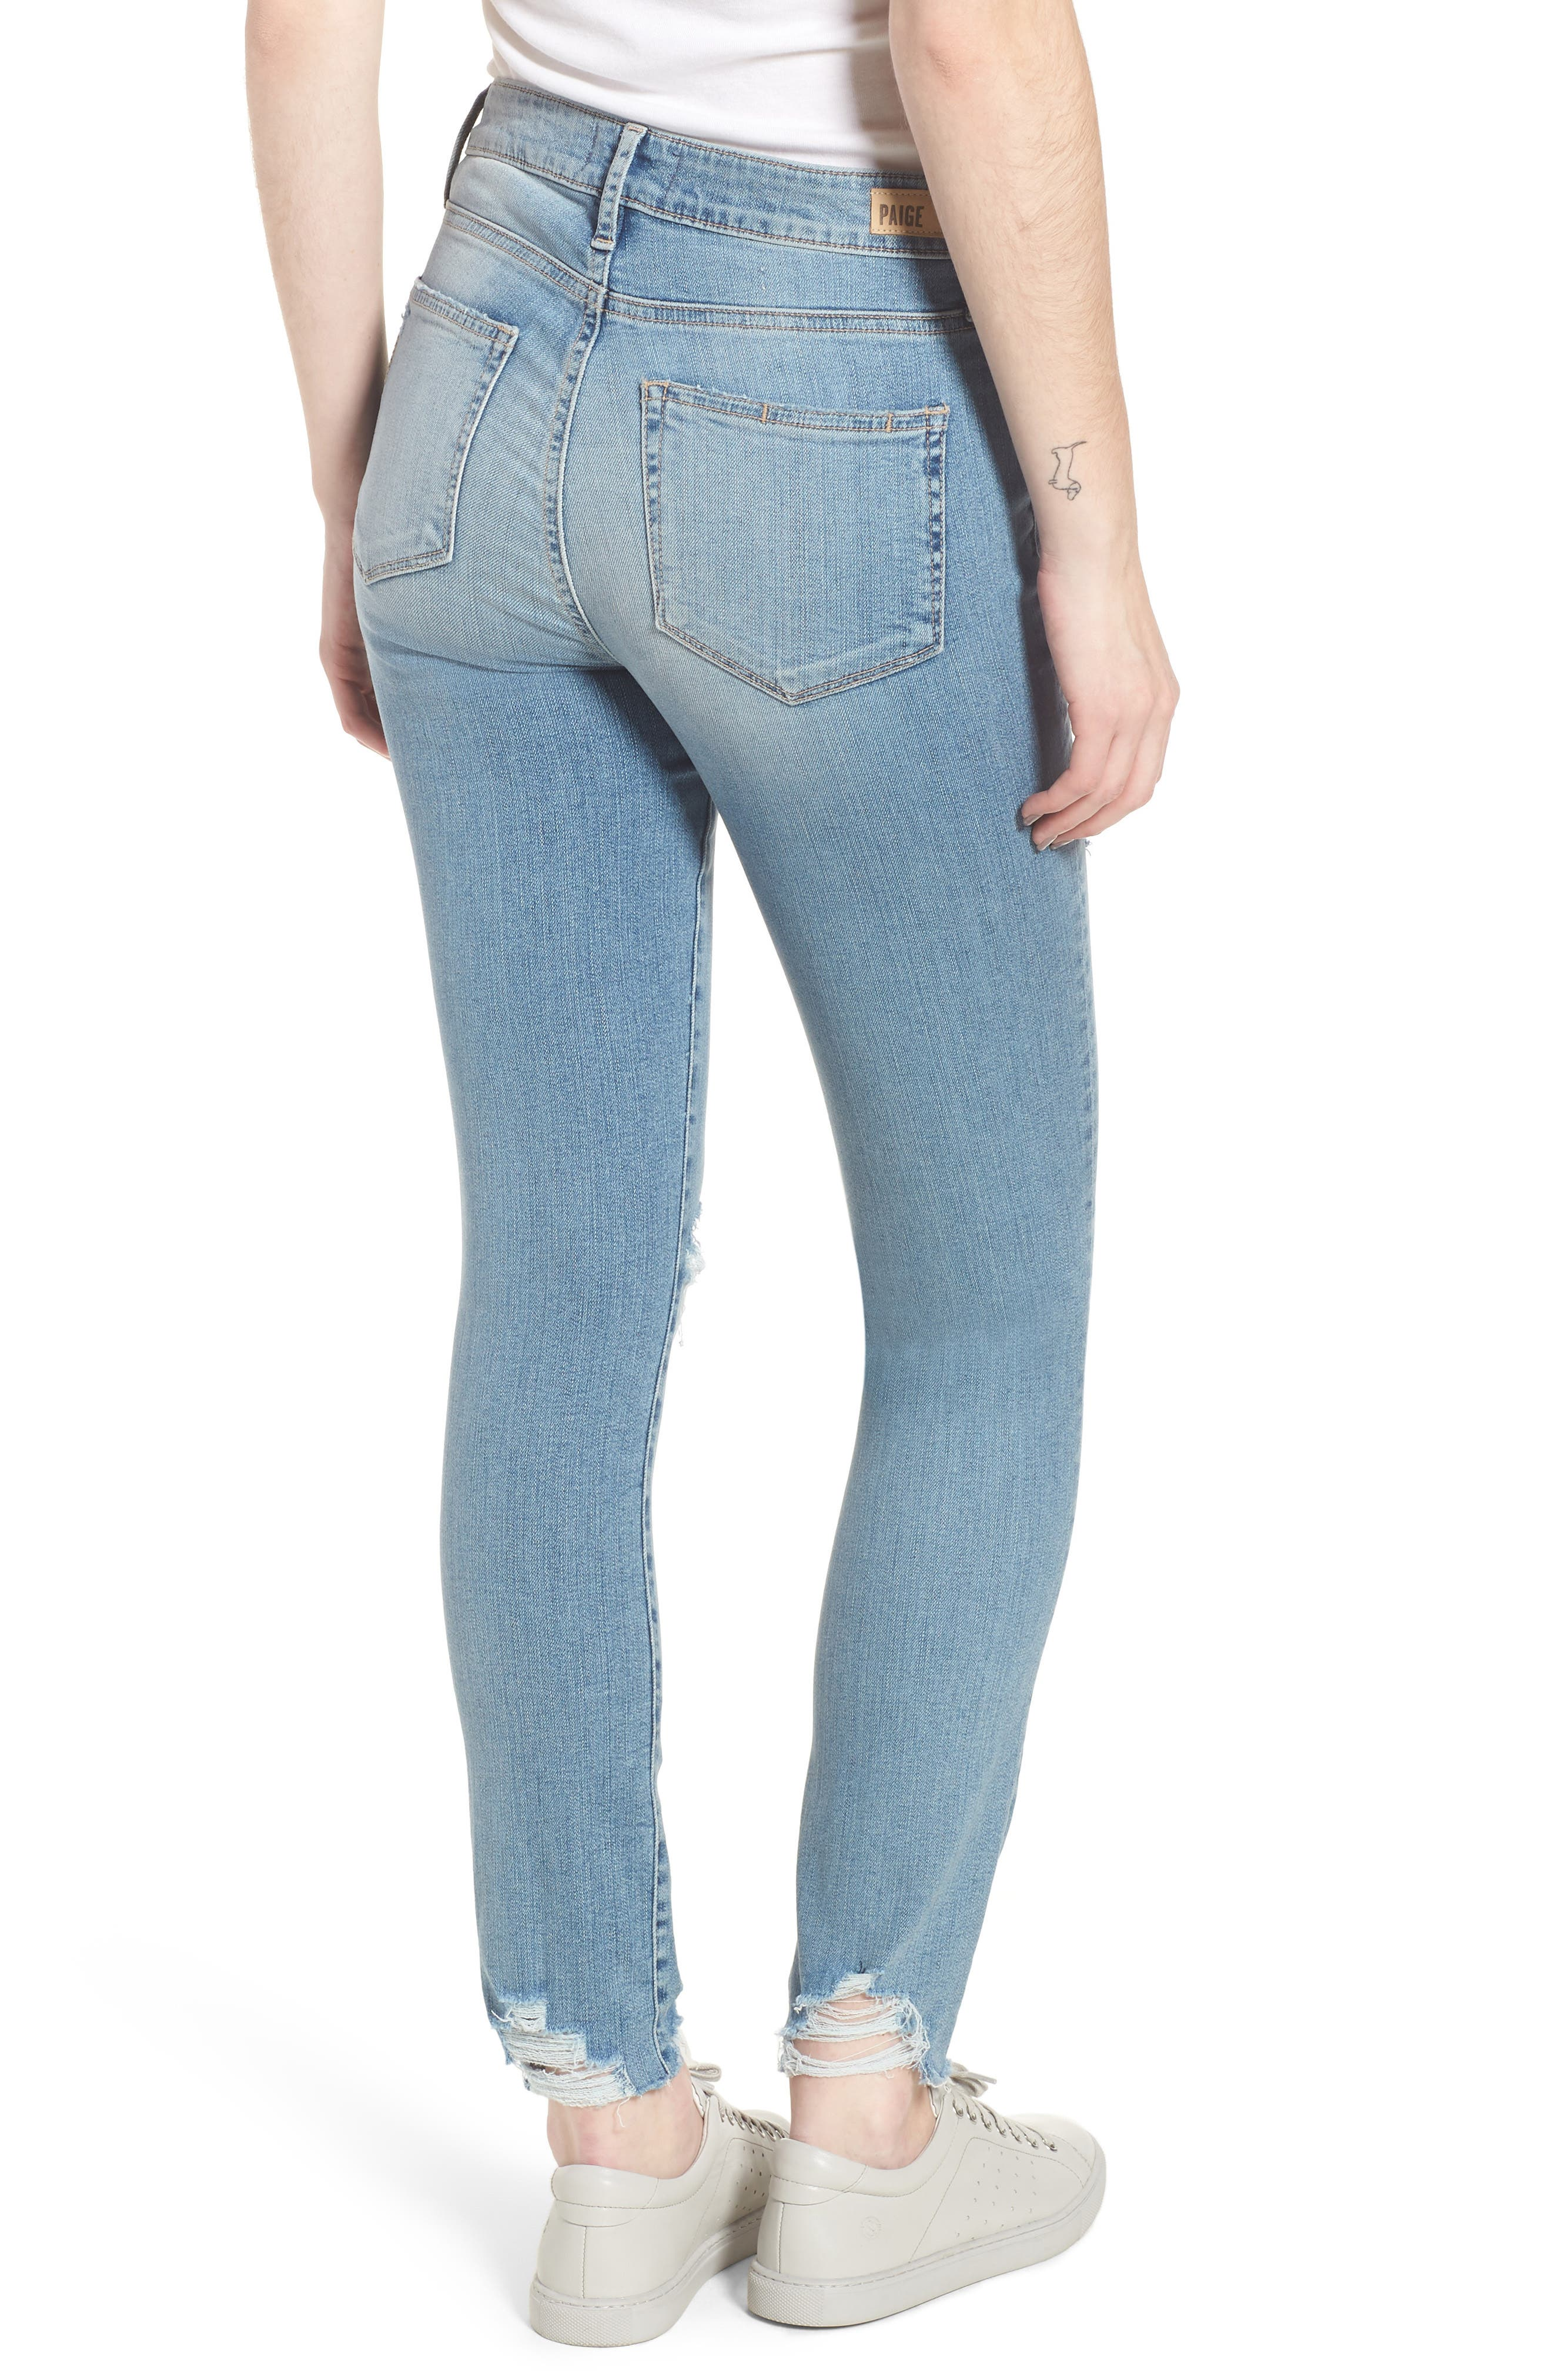 Hoxton High Waist Ankle Skinny Jeans,                             Alternate thumbnail 2, color,                             Janis Destructed